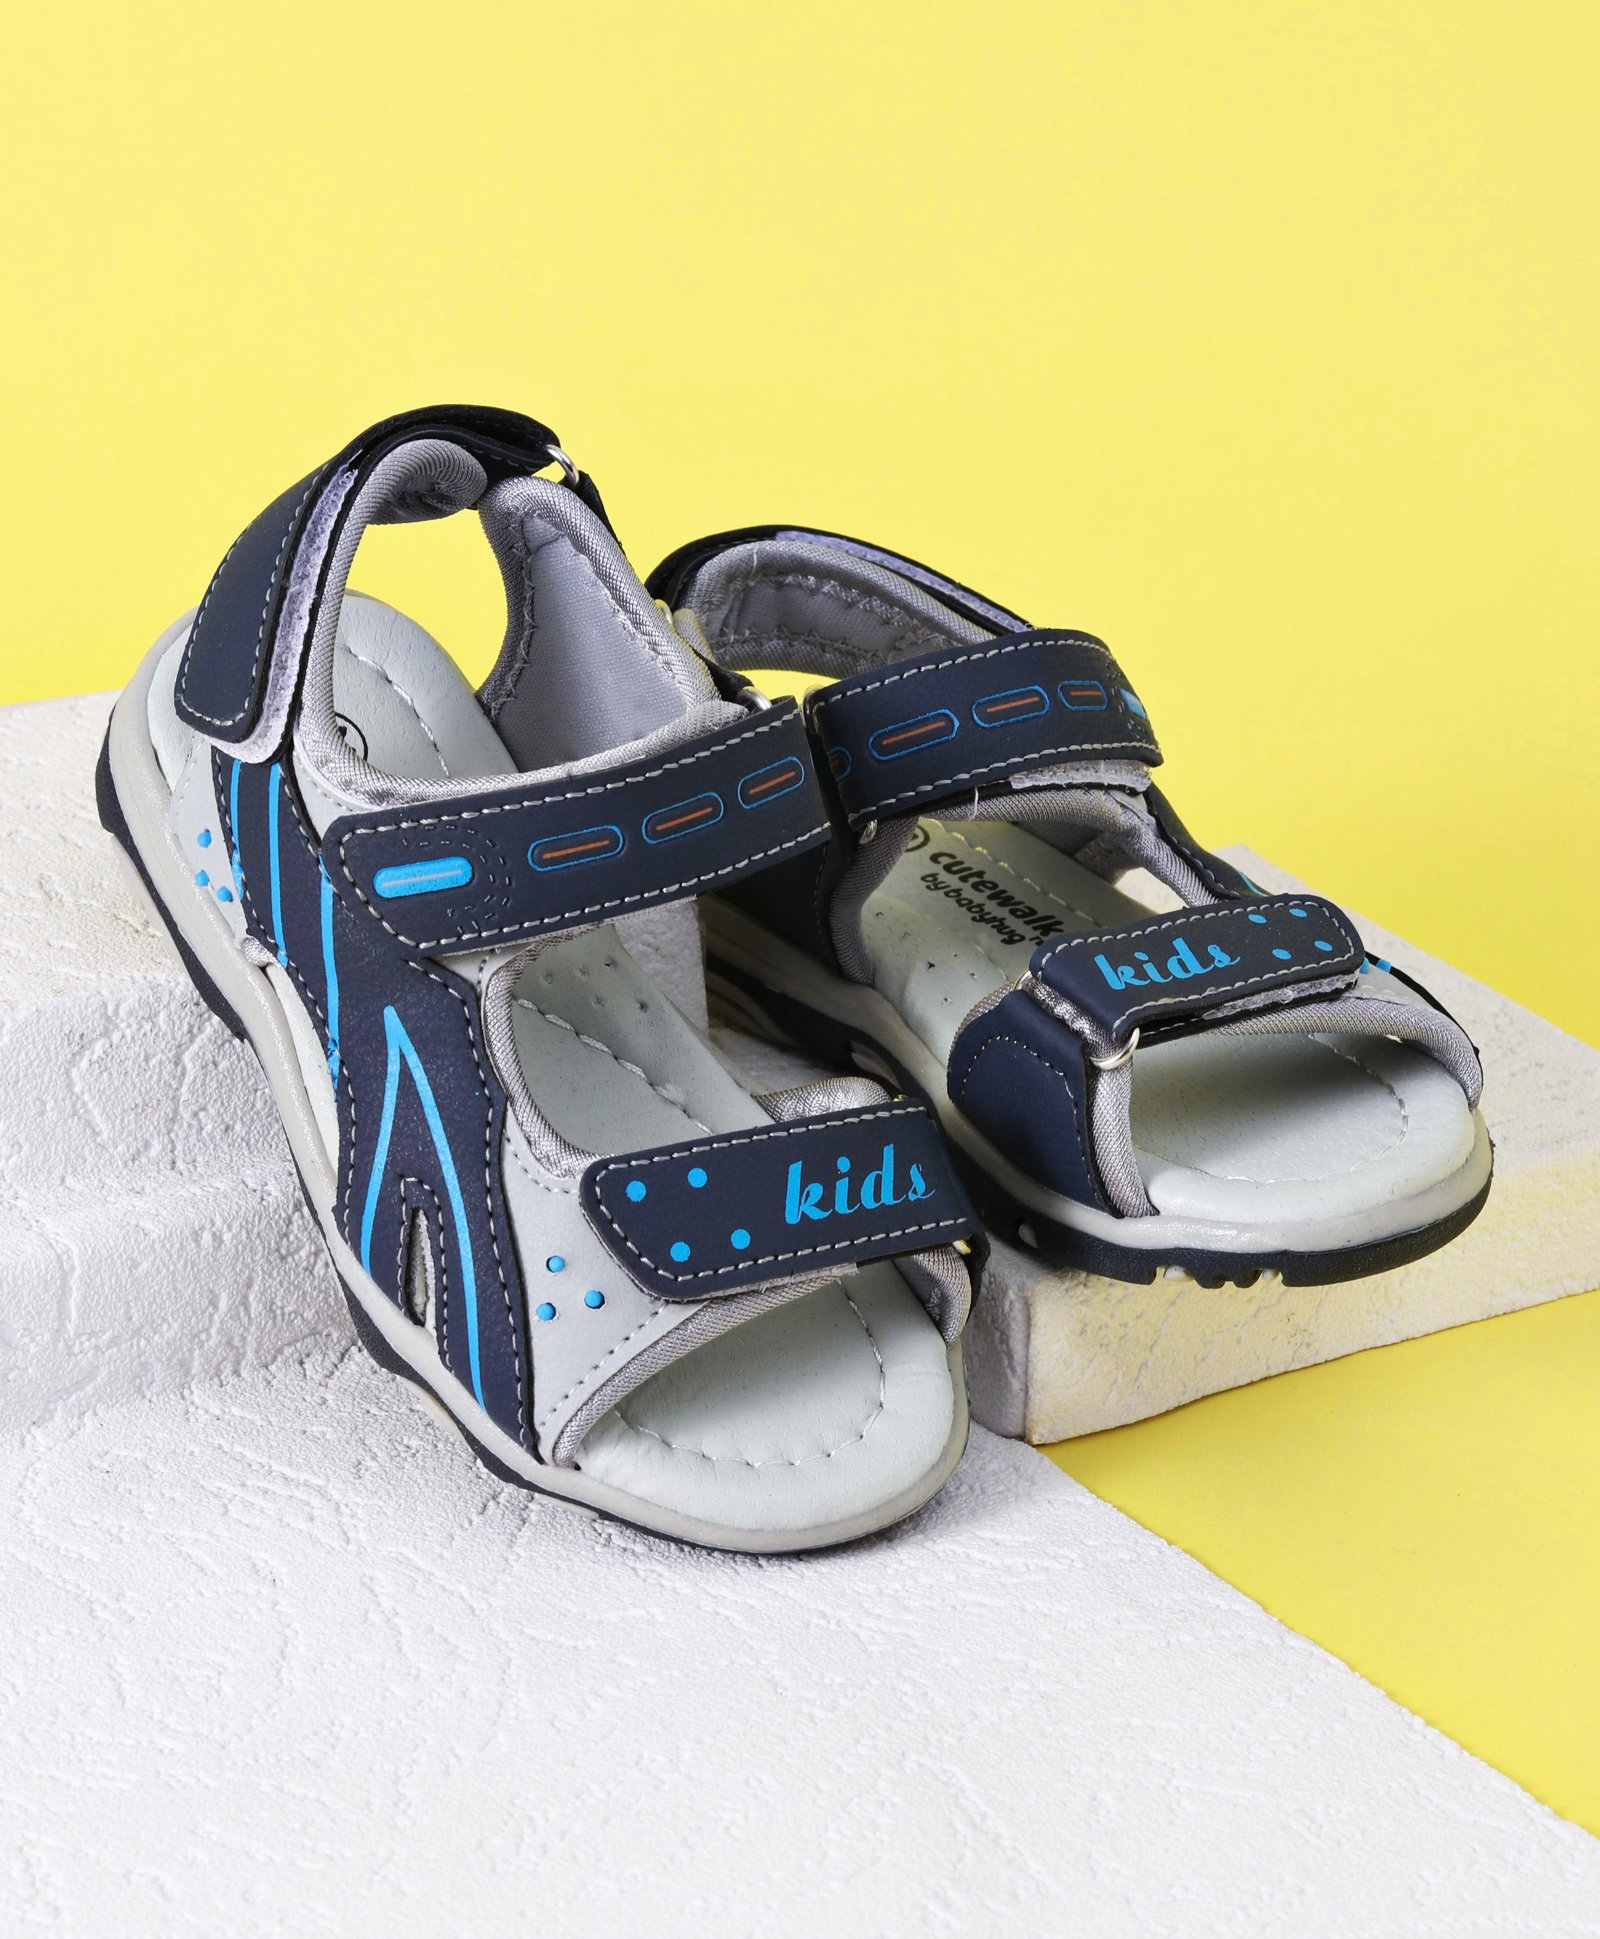 dab825cdd7309 Buy Cute Walk by Babyhug Sandals Grey Navy Blue for Boys (4-4 ...